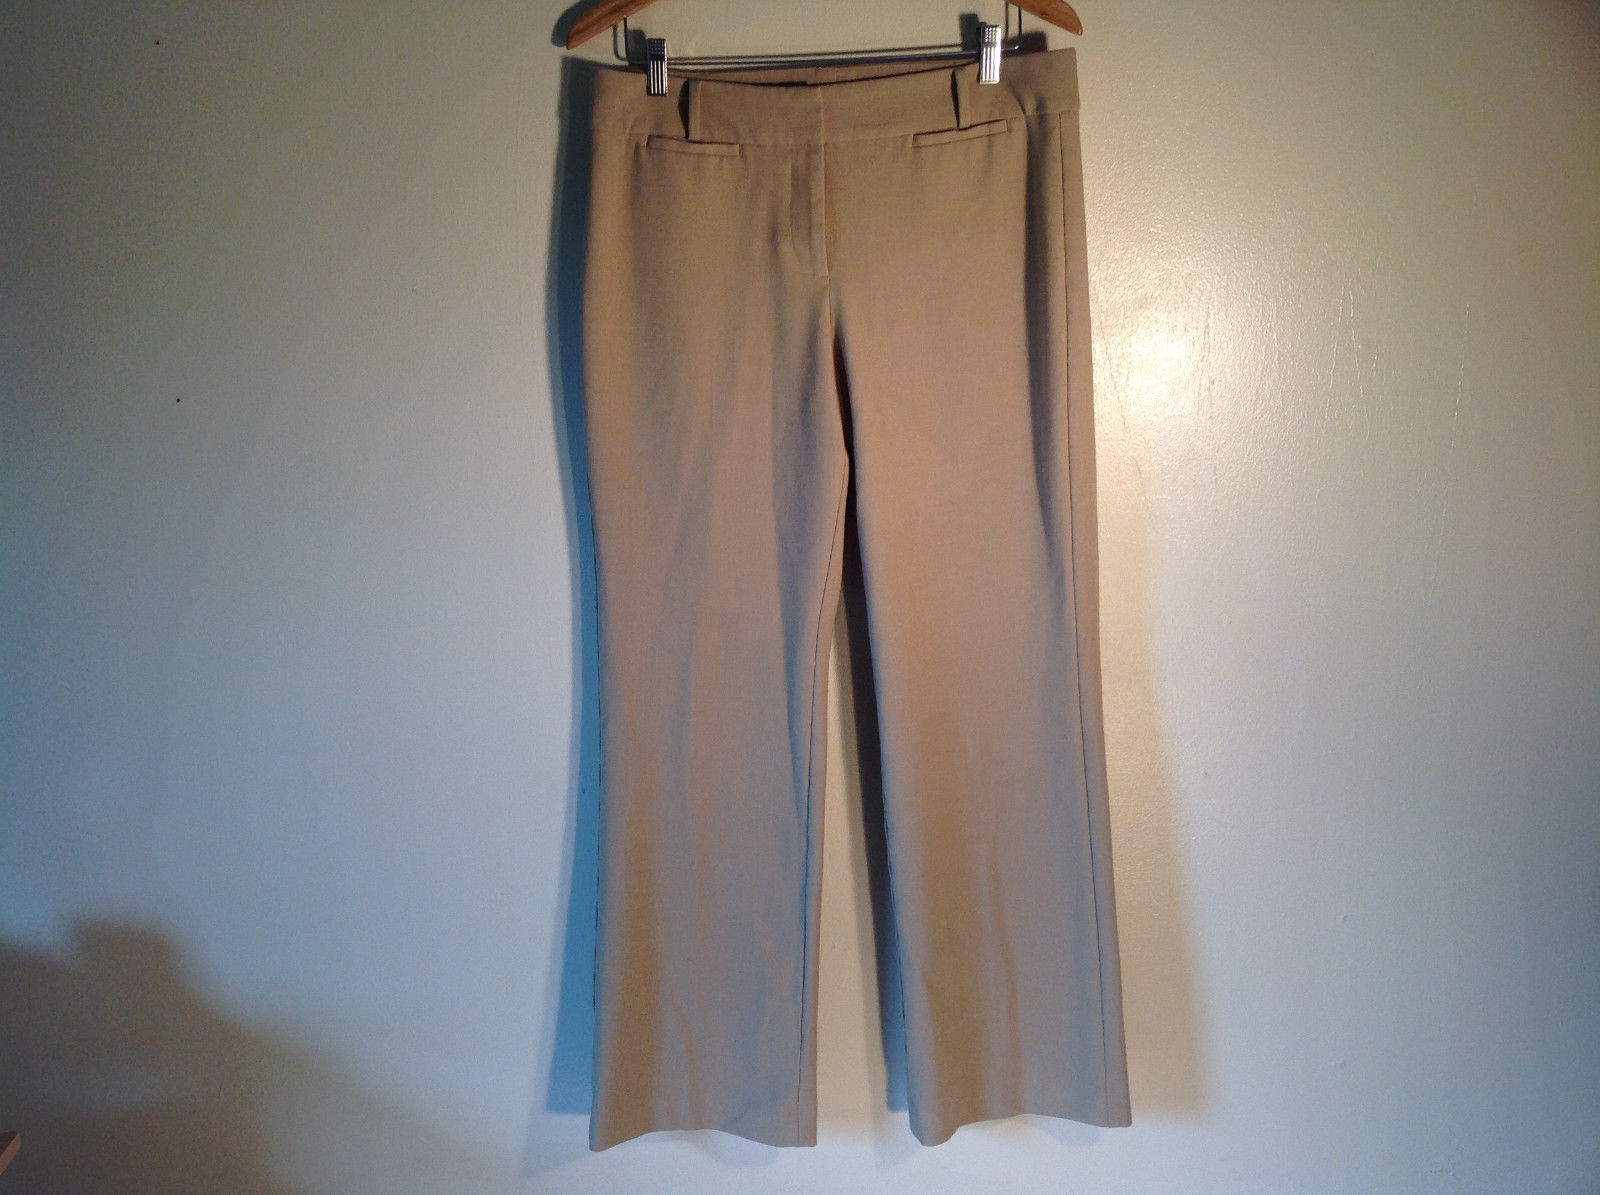 Talbots Women's Size 10 Business Casual Pants Curvy Fit Beige Camel Tan Brown